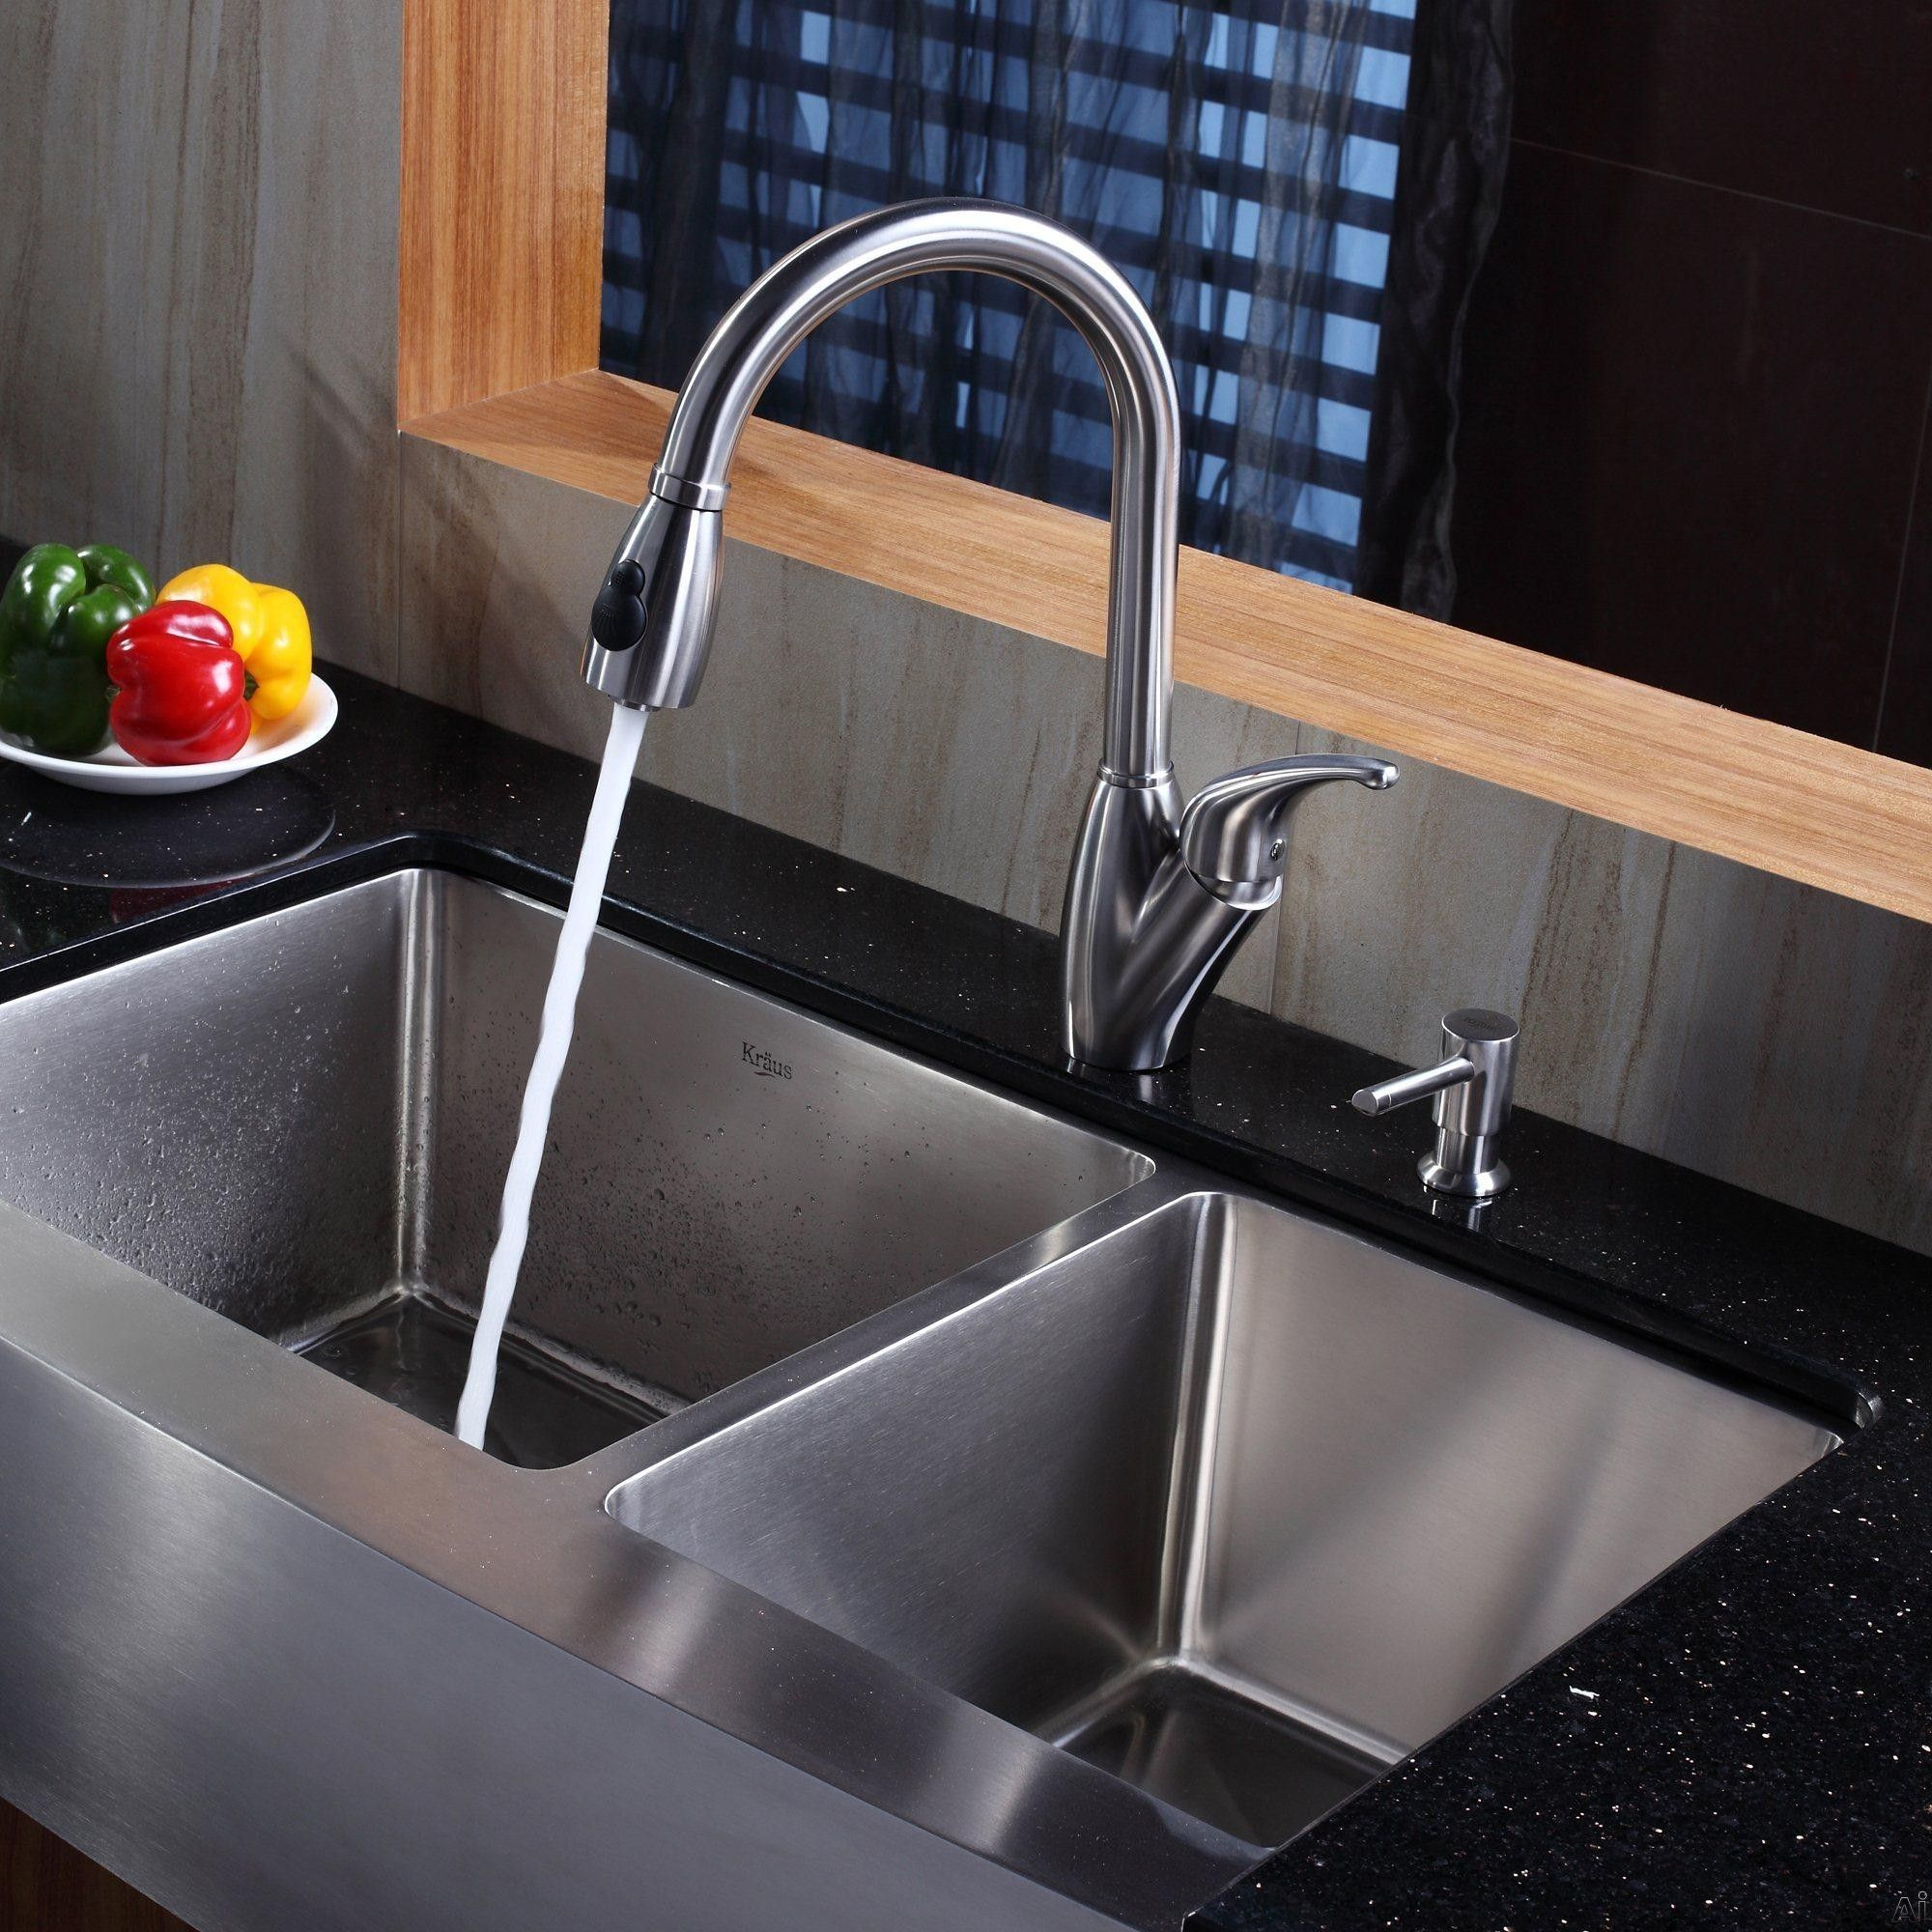 Kraus Khf20336kpf2120sd20 36 Inch Stainless Steel 60 40 Double Bowl Apron Kitchen Sink With 16 Gauge 10 Inch Bowl Depth Rear Set Drain Opening And Stone Guard Farmhouse Sink Kitchen Double Bowl Kitchen Sink